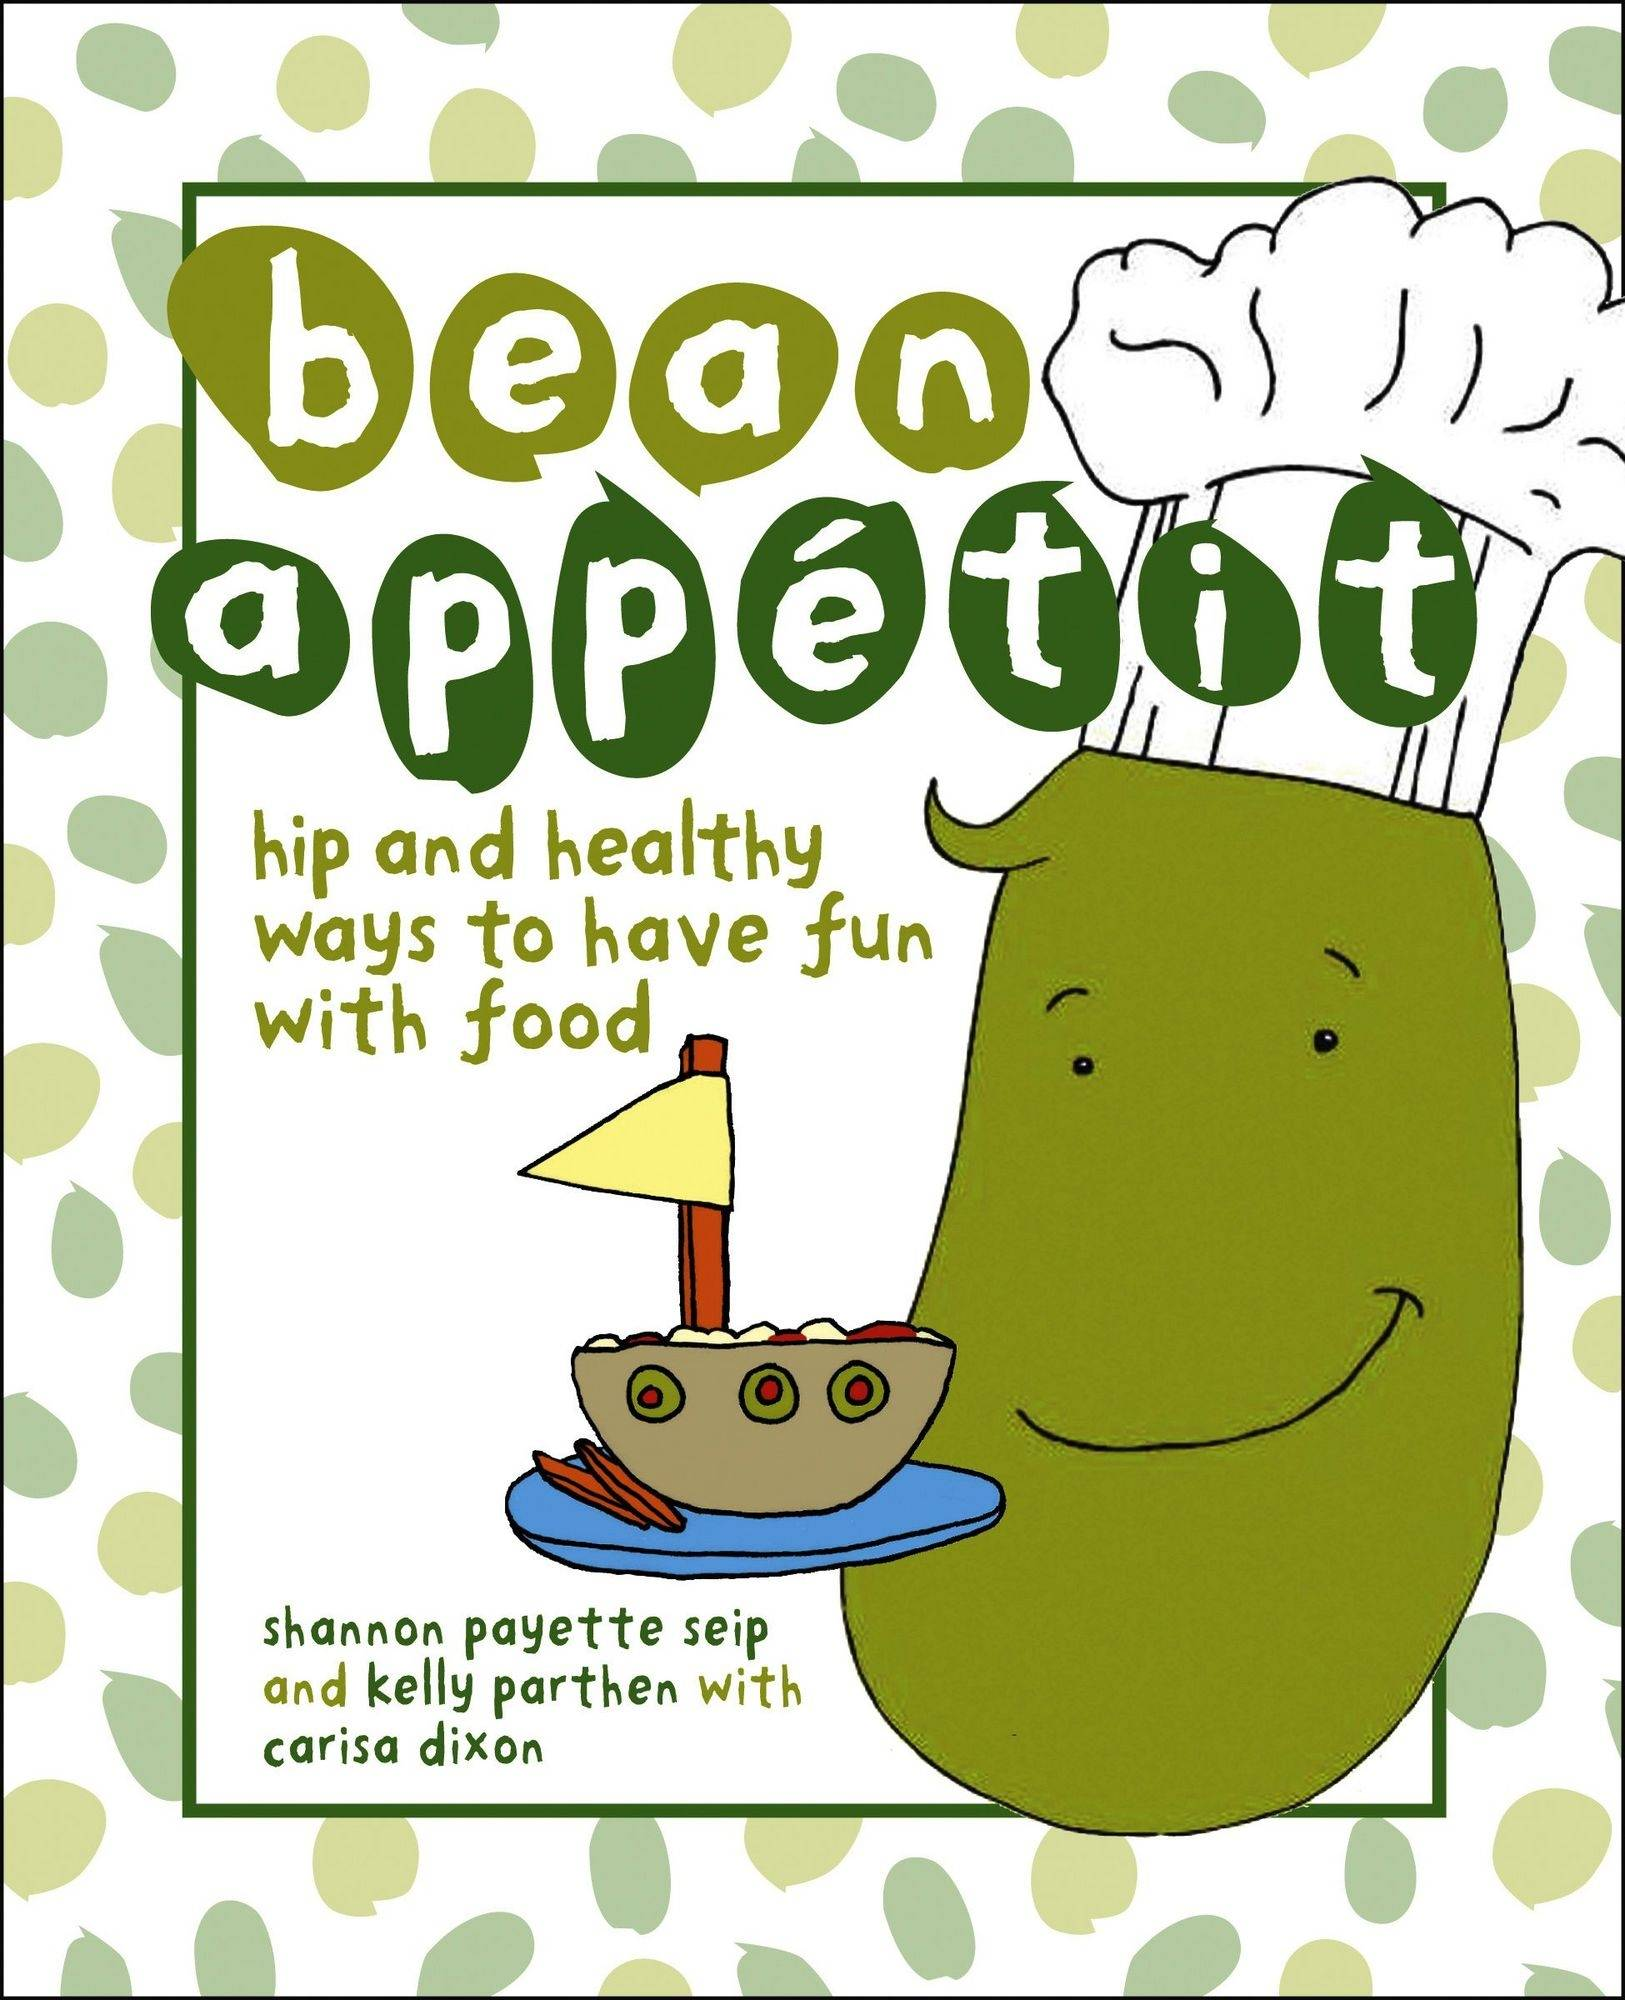 """Bean Appetit"" by Shannon Payette Seip and Kelly Parthen"